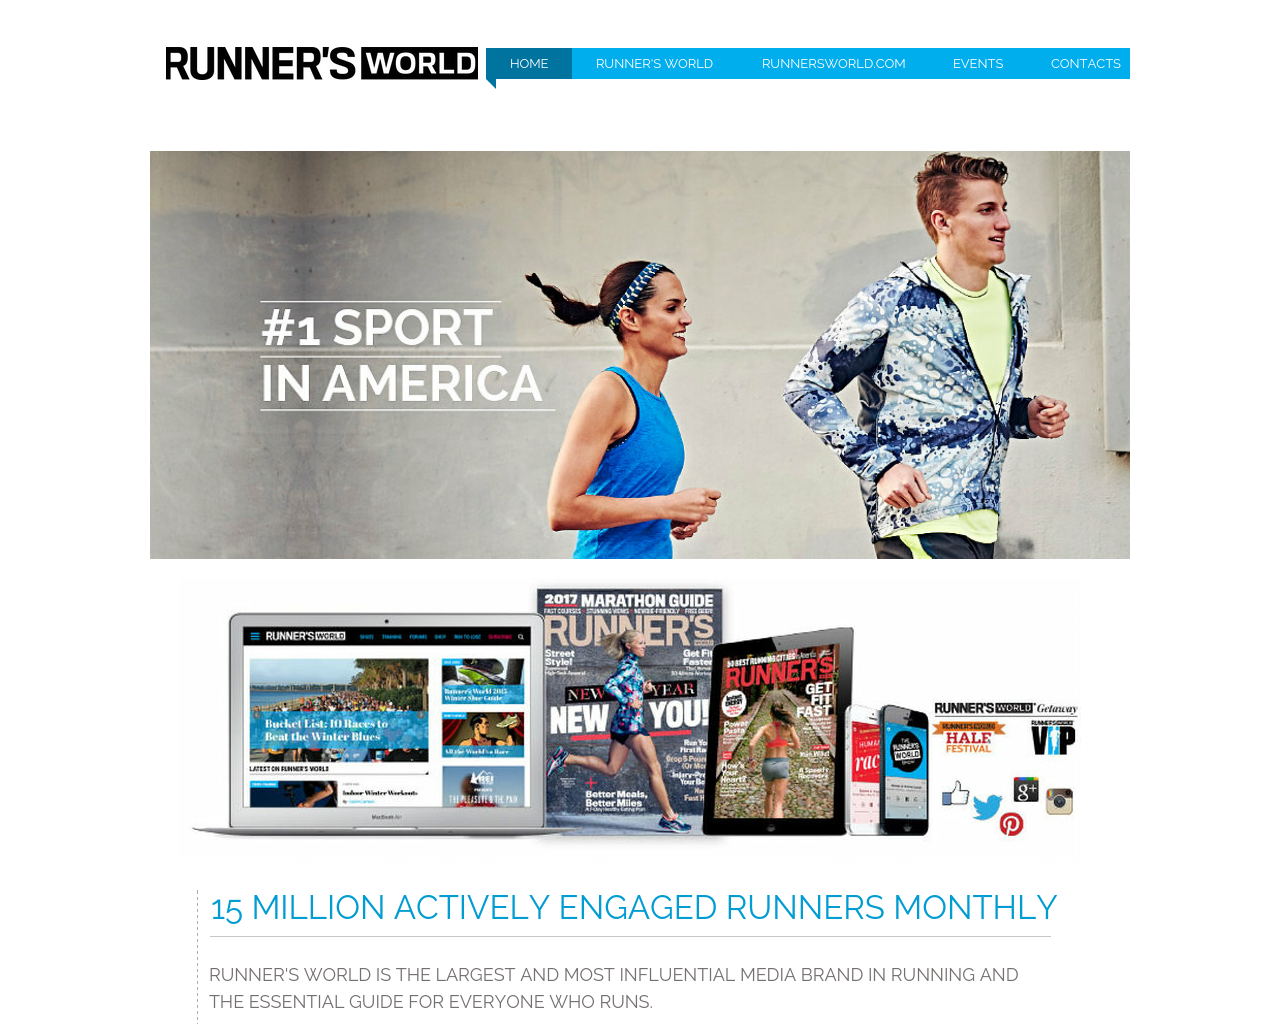 RUNNER'S-WORLD-Advertising-Reviews-Pricing